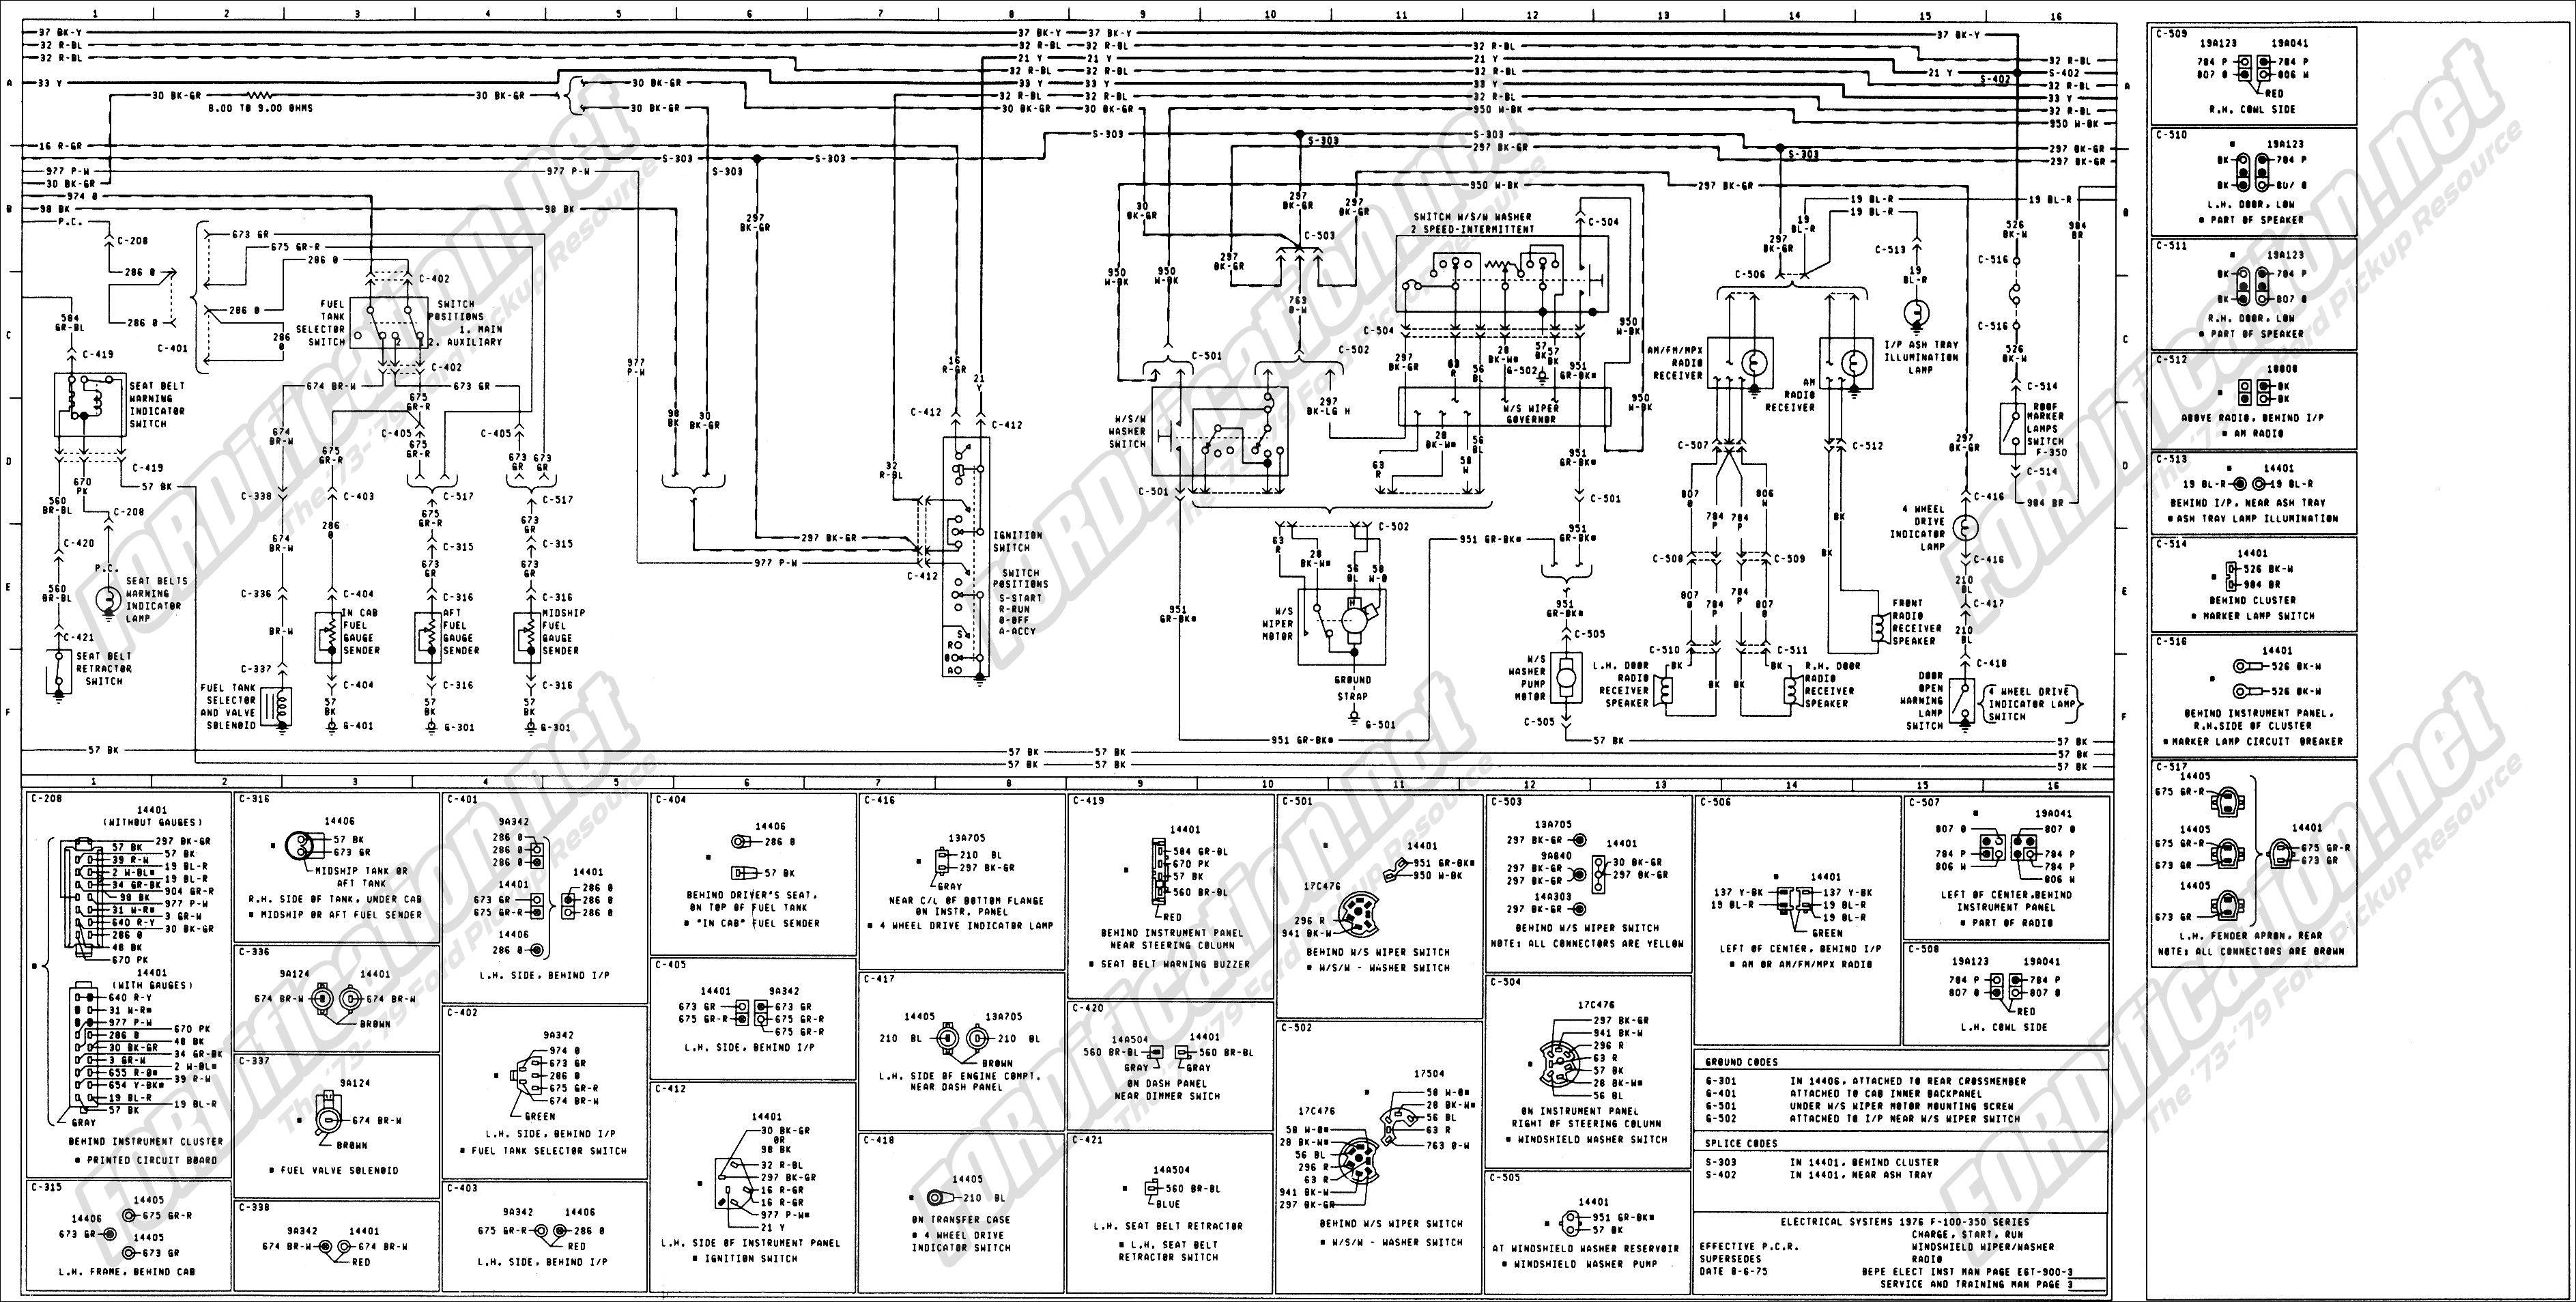 wiring_76master_3of9 2017 ford super duty trailer wiring diagram solidfonts 2009 ford f250 fuse box diagram at eliteediting.co